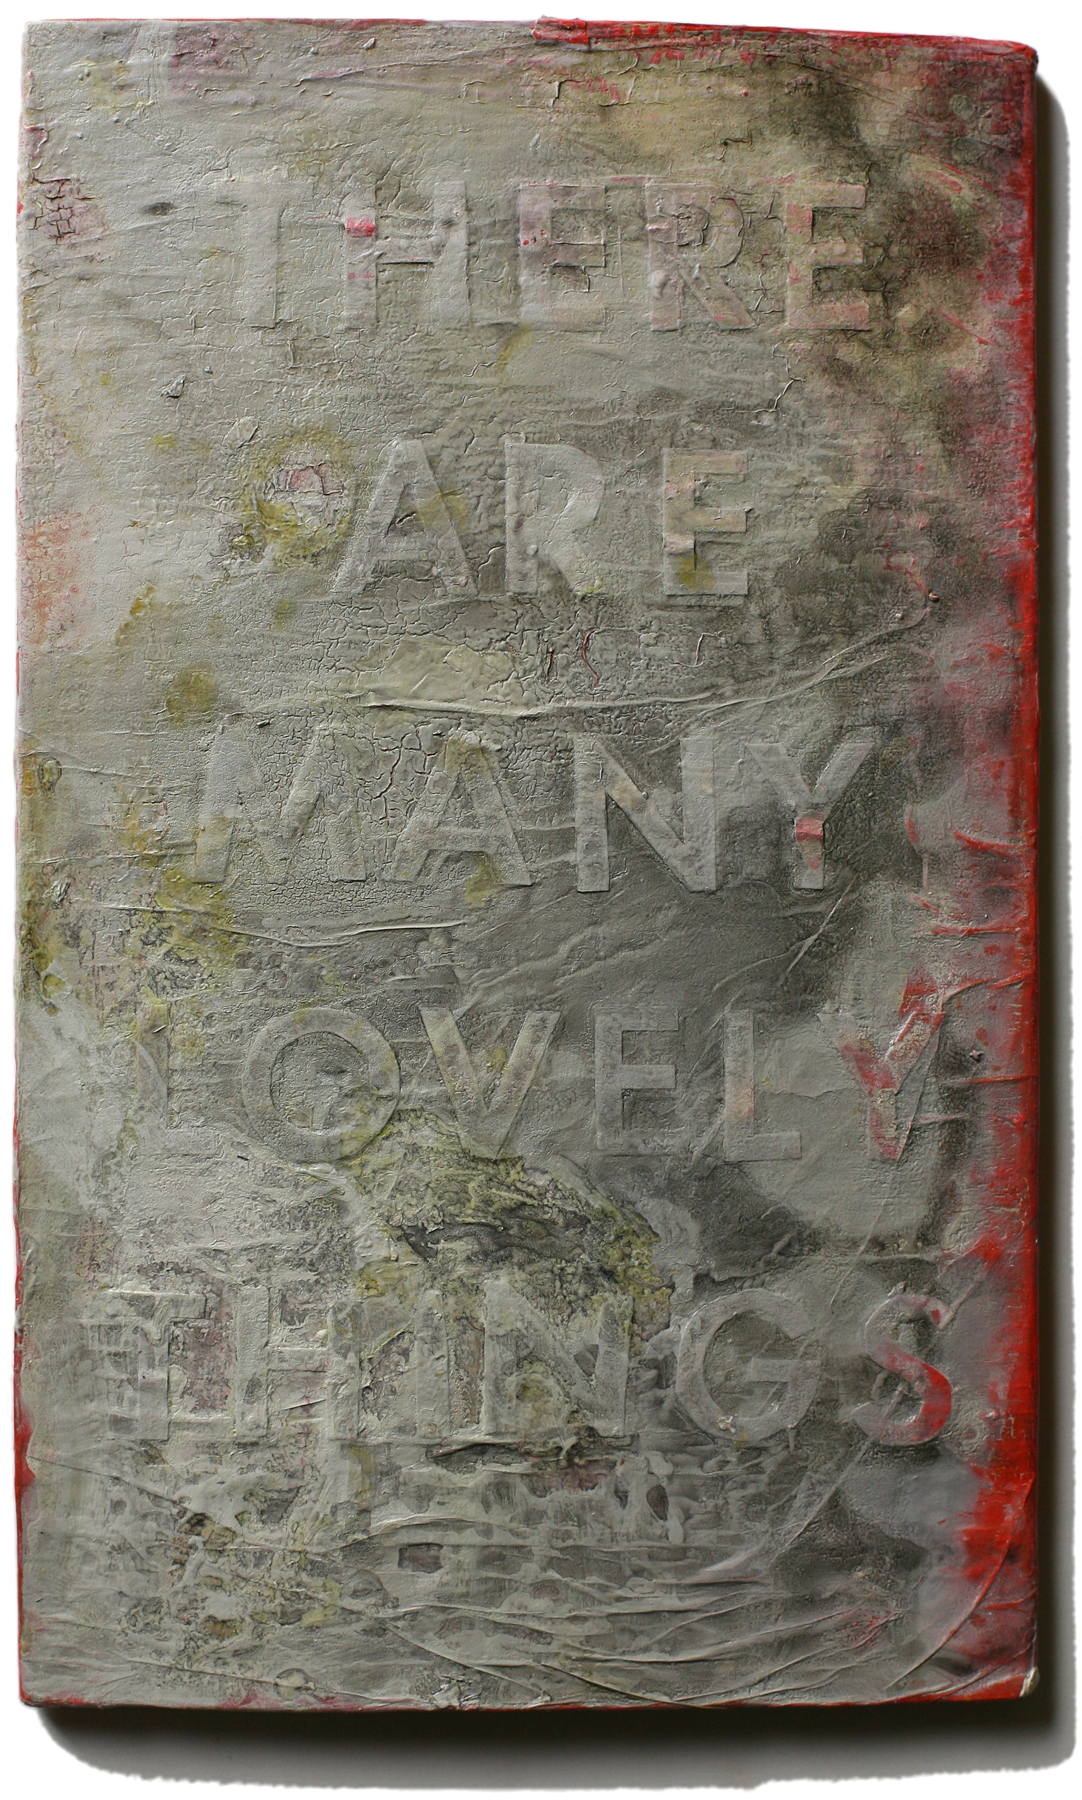 """Lovely Things 41, 10"""" x 6"""", 2008-2010 (private collection)"""